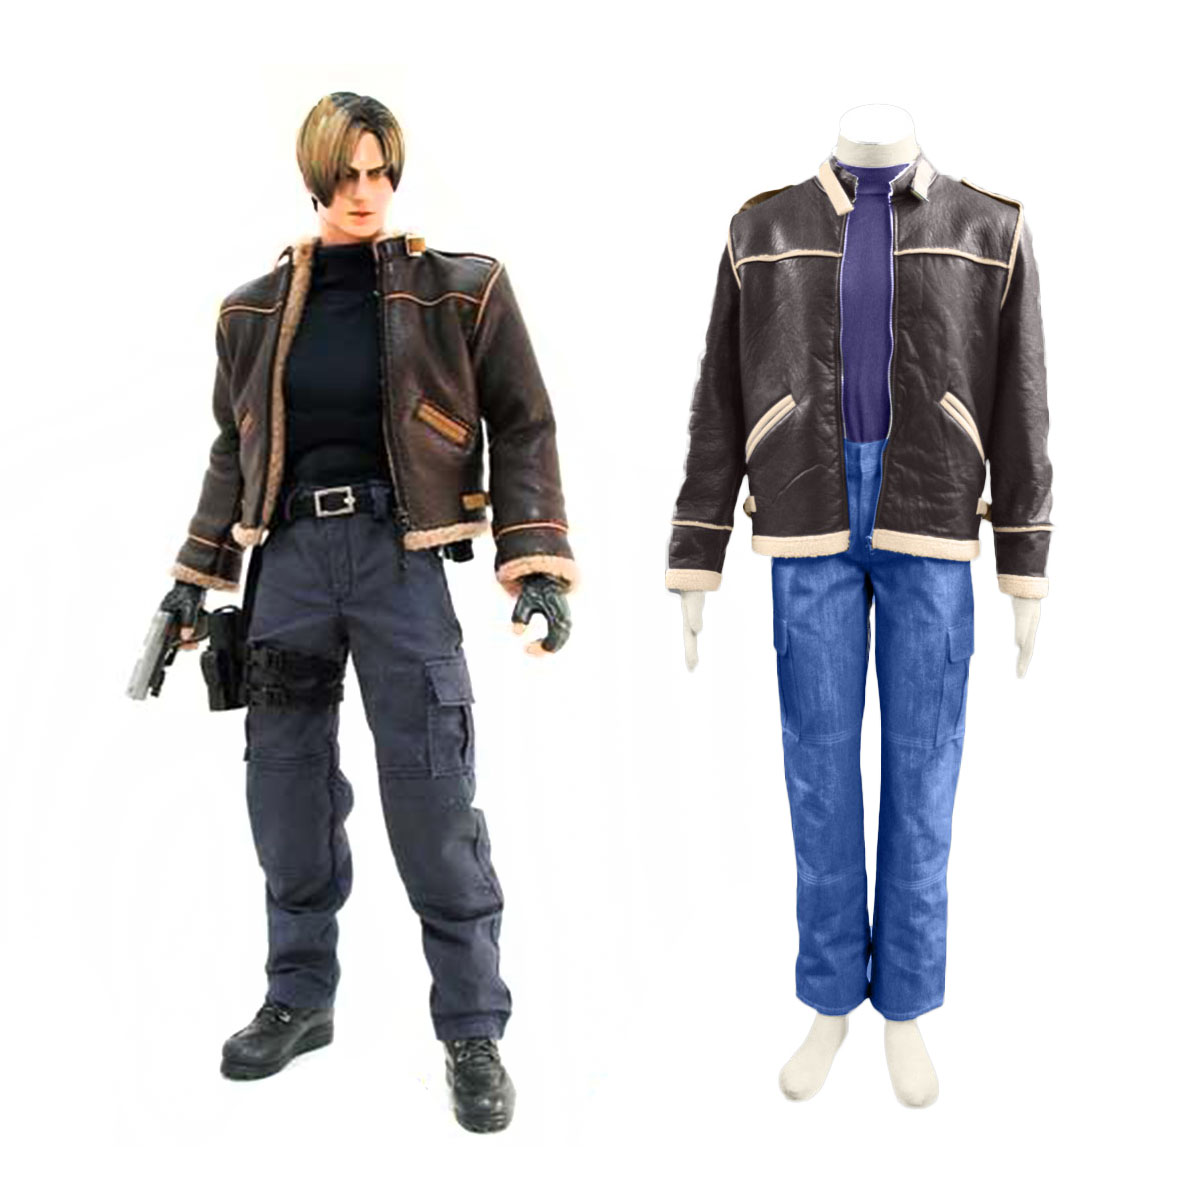 Resident Evil 4 Leon S Kennedy Cosplay Costume Deluxe Edition